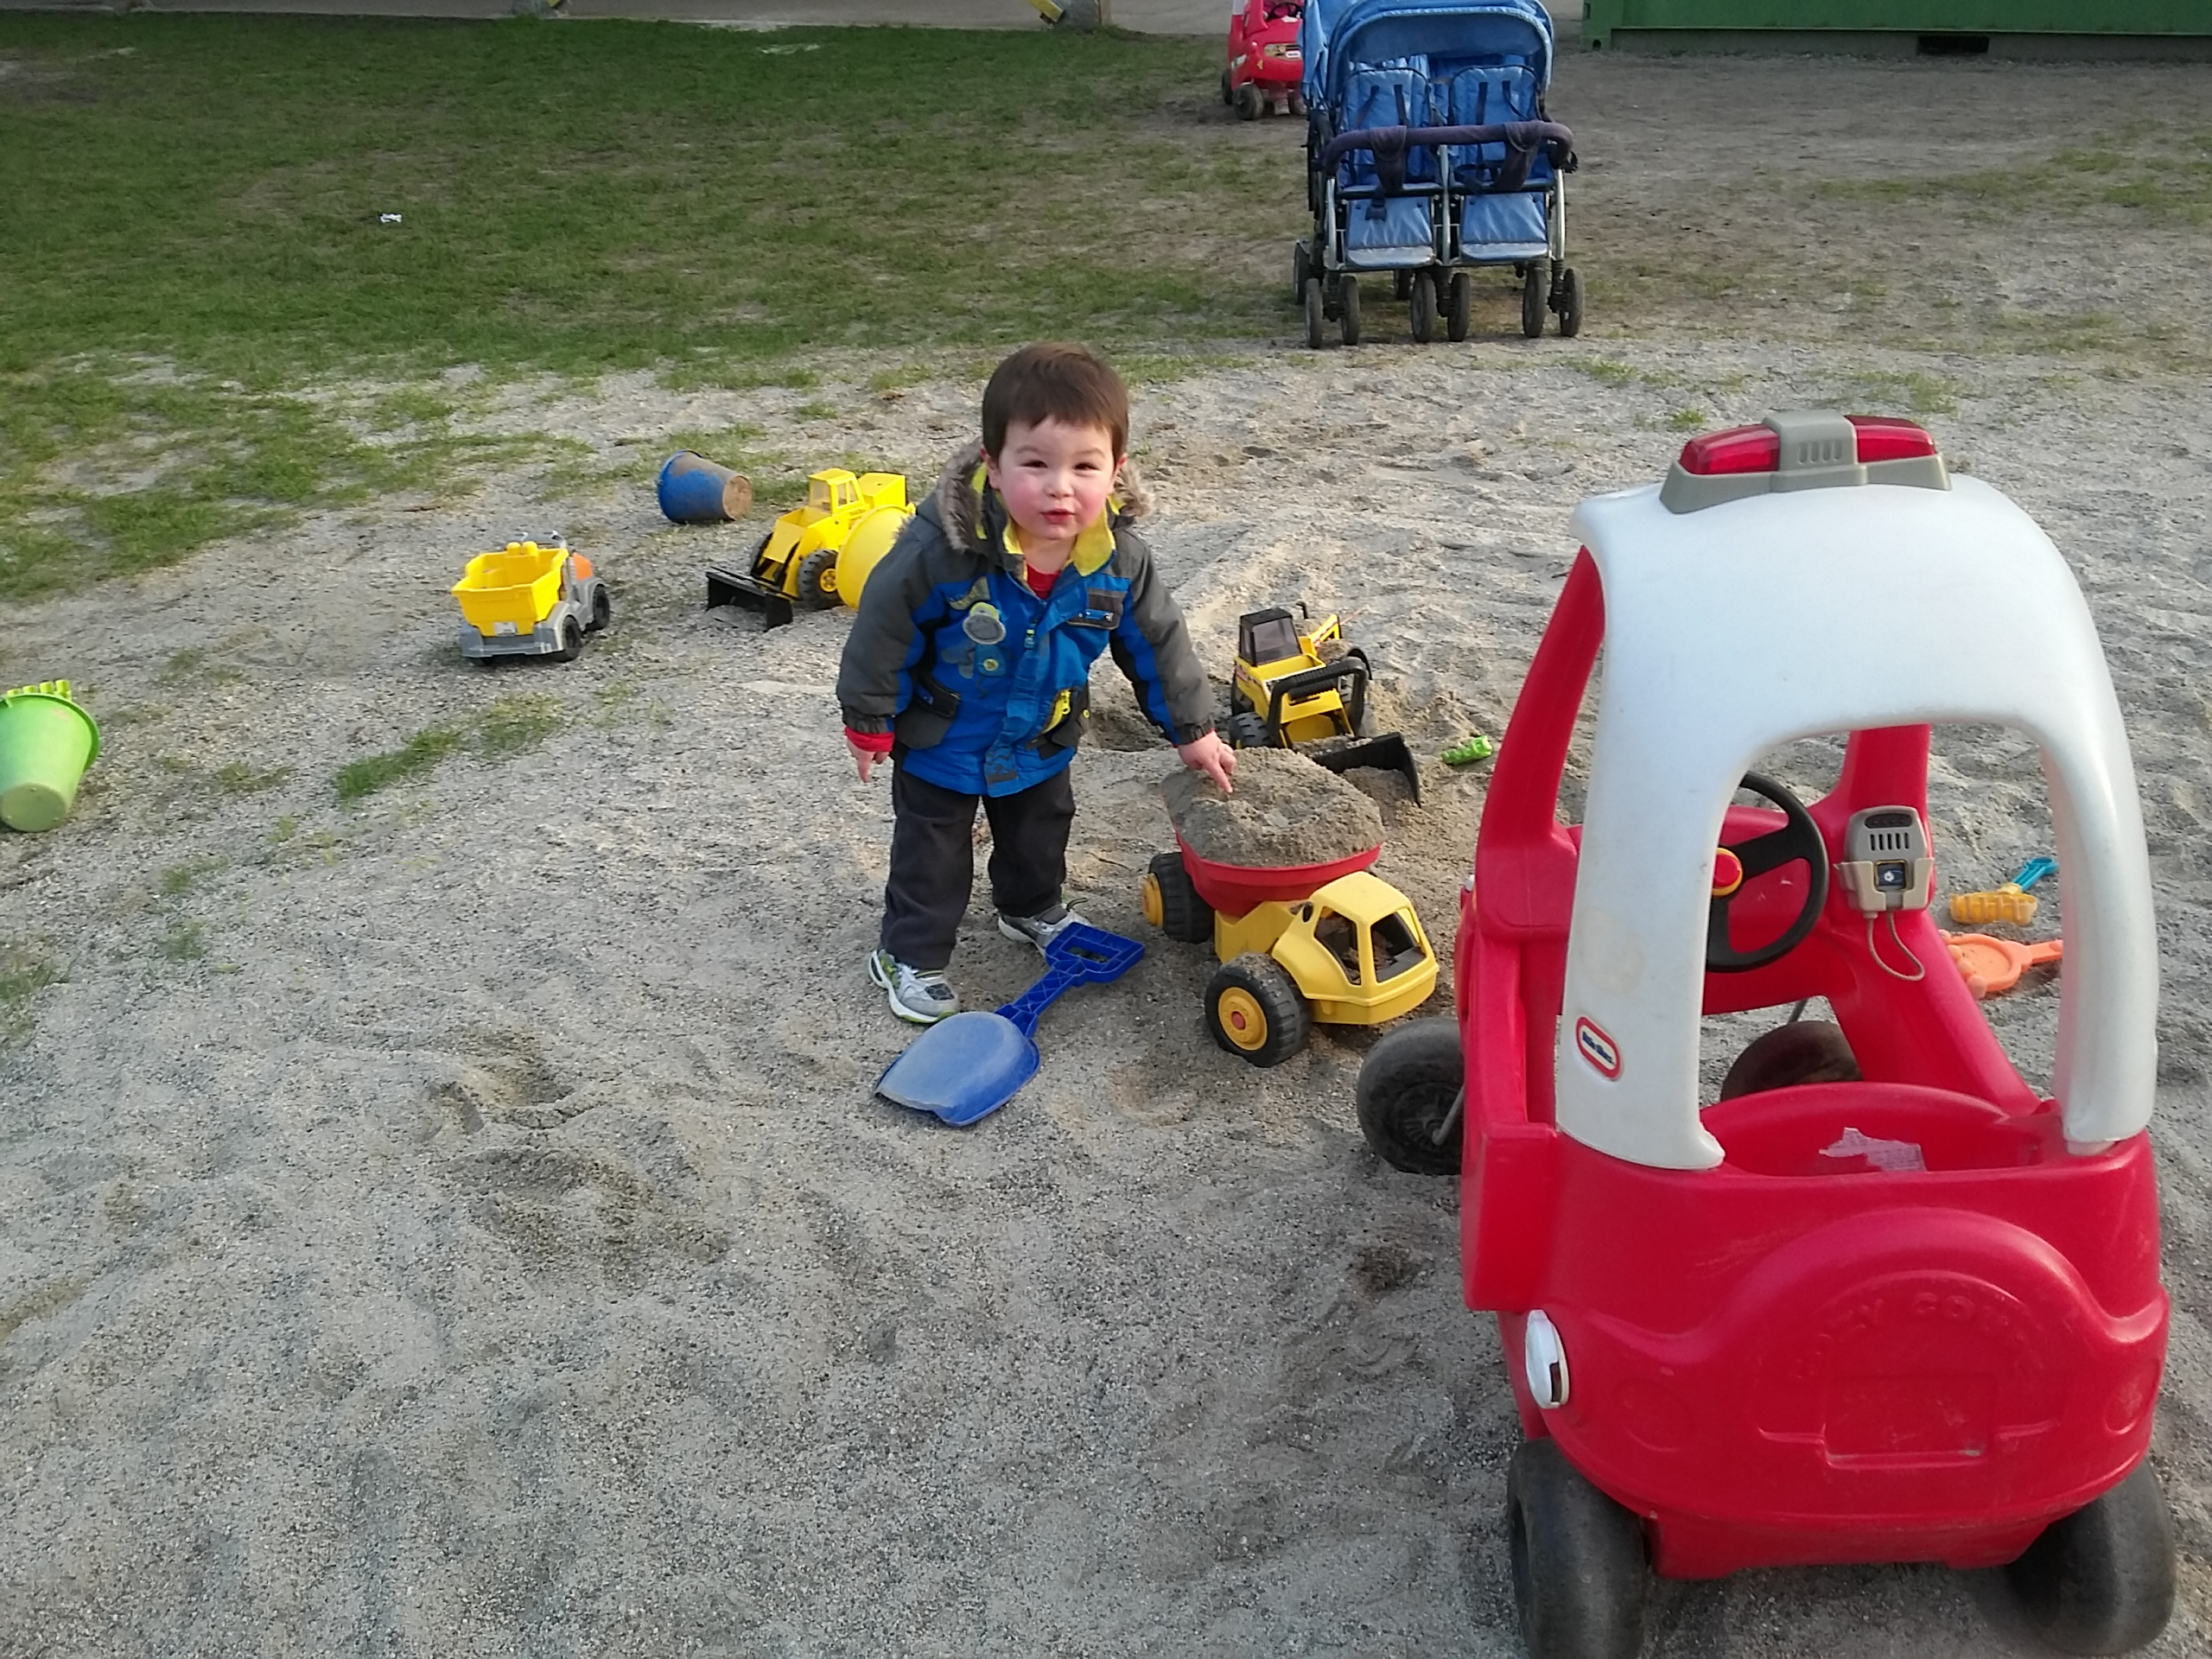 Enjoying the sand box